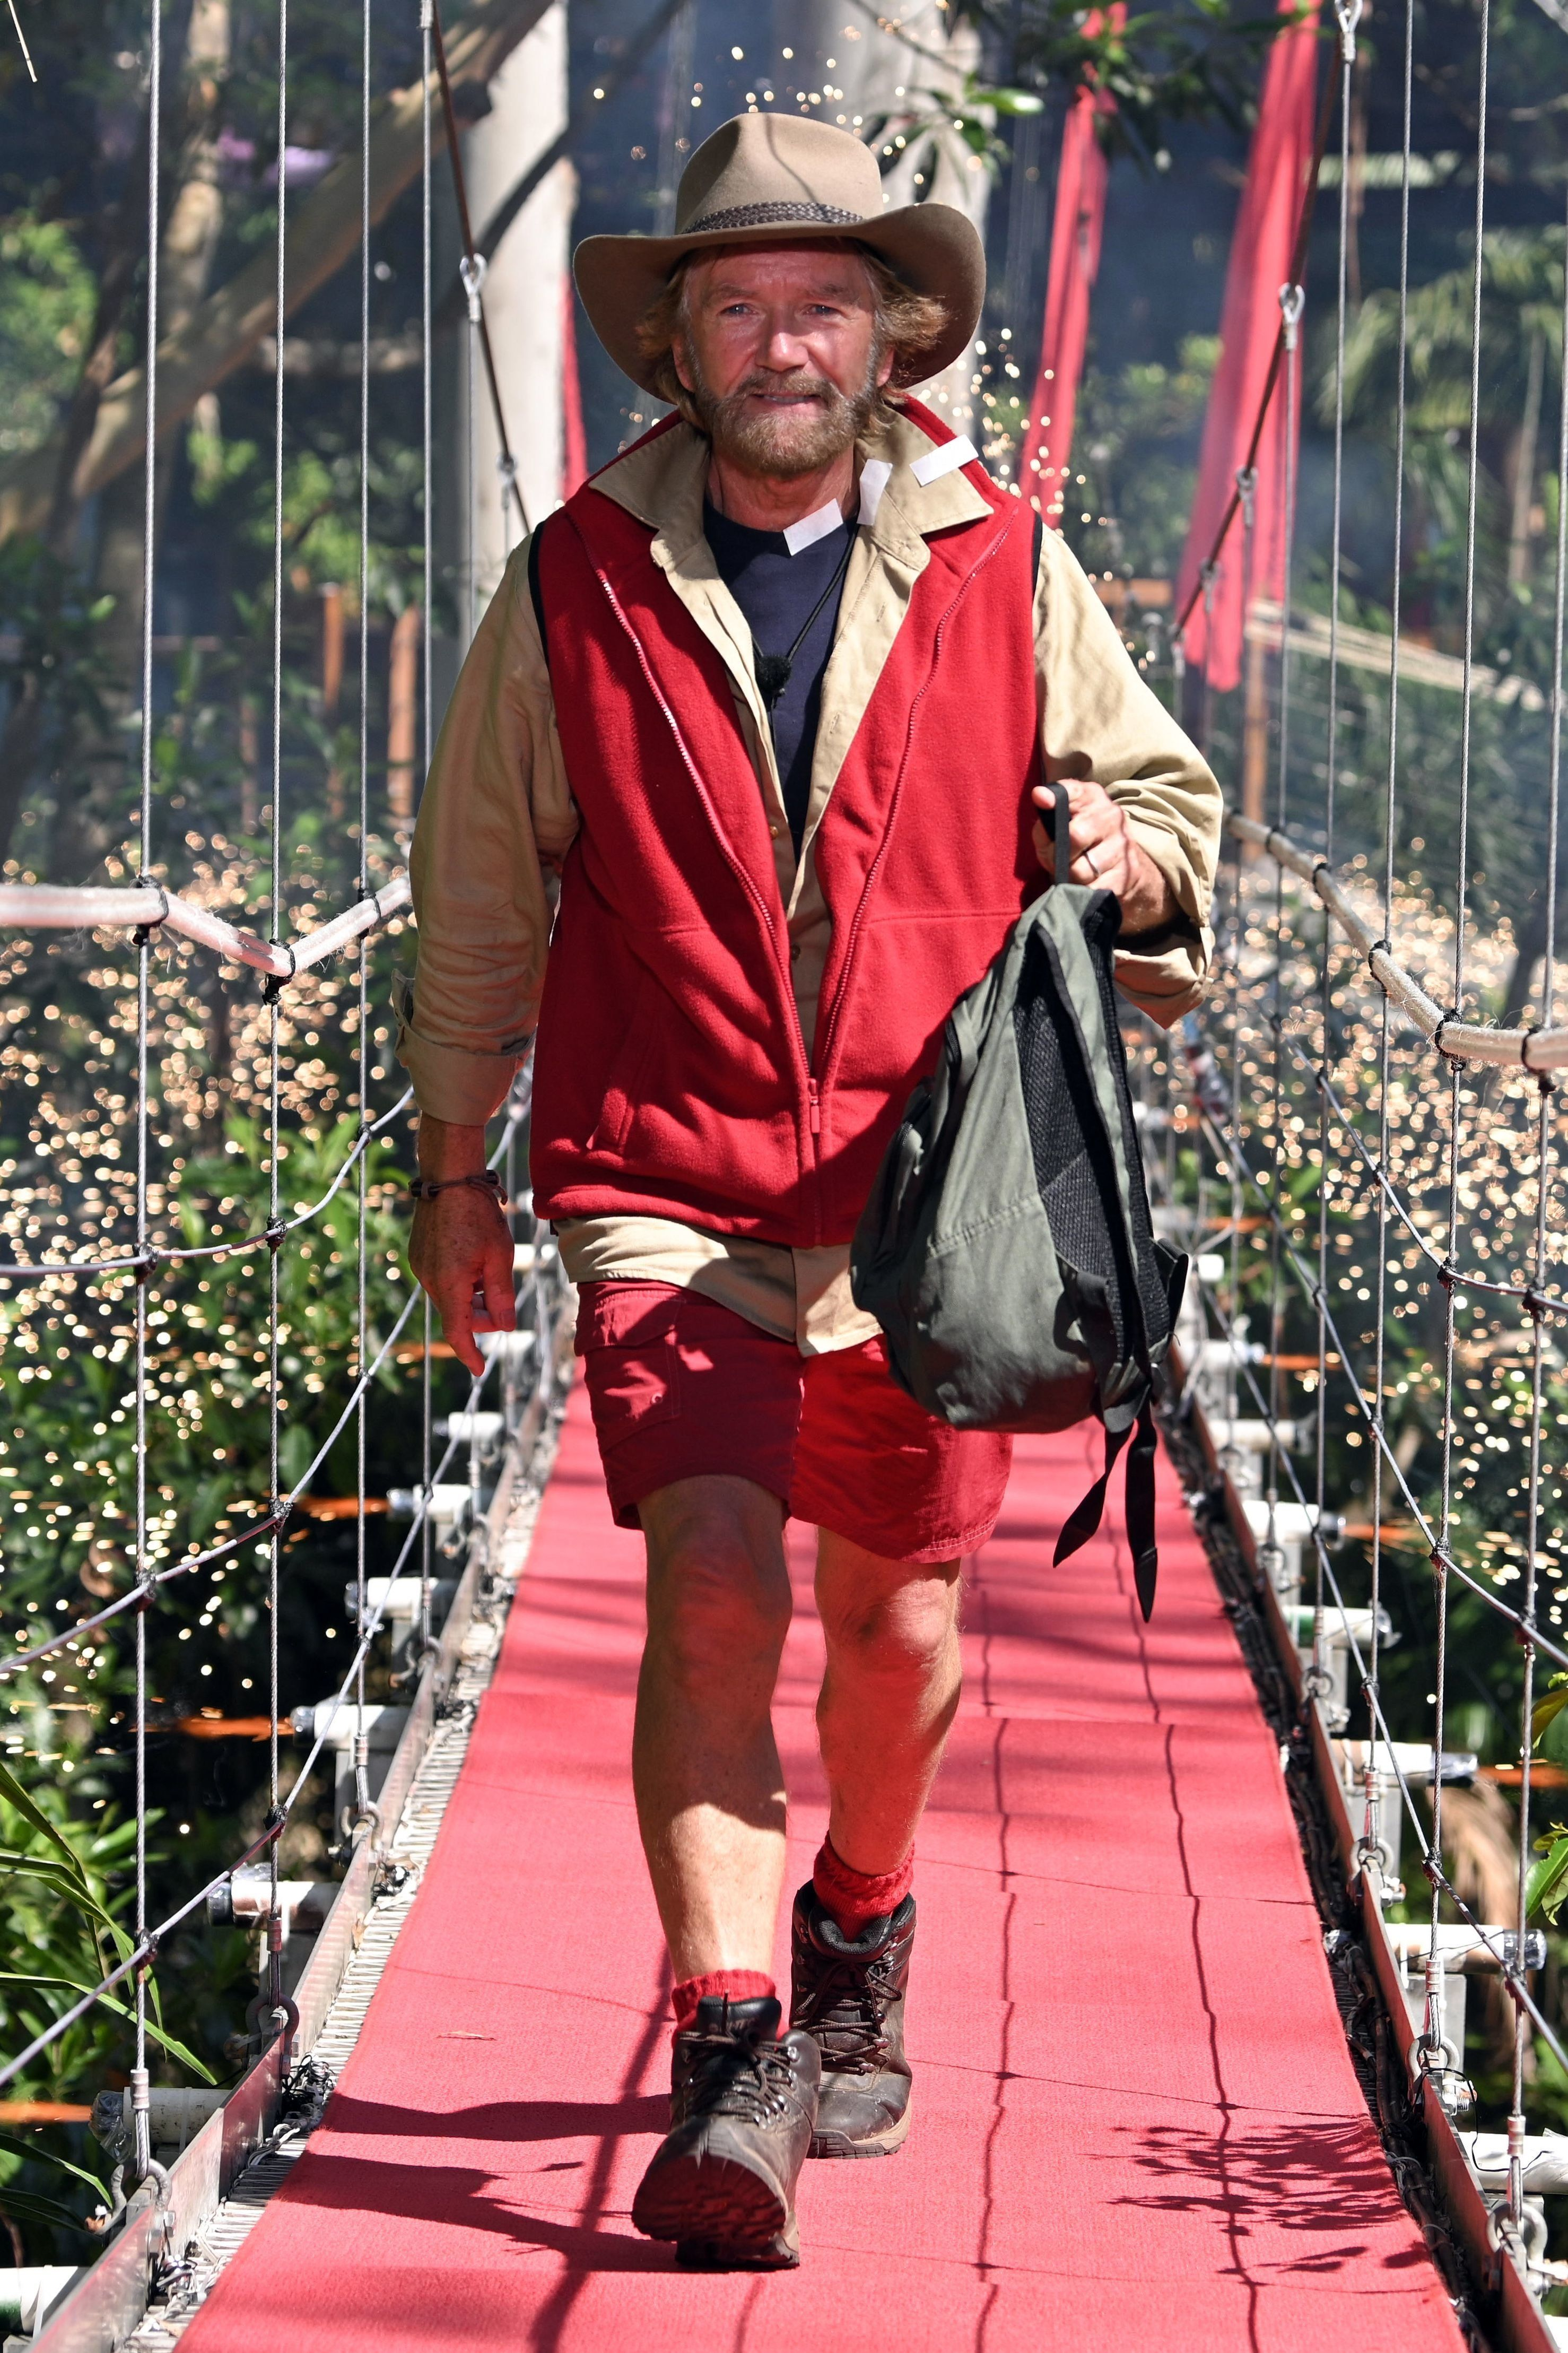 Noel Edmonds Is The First Voted Off 'I'm A Celebrity' And Everyone Is Making The Same